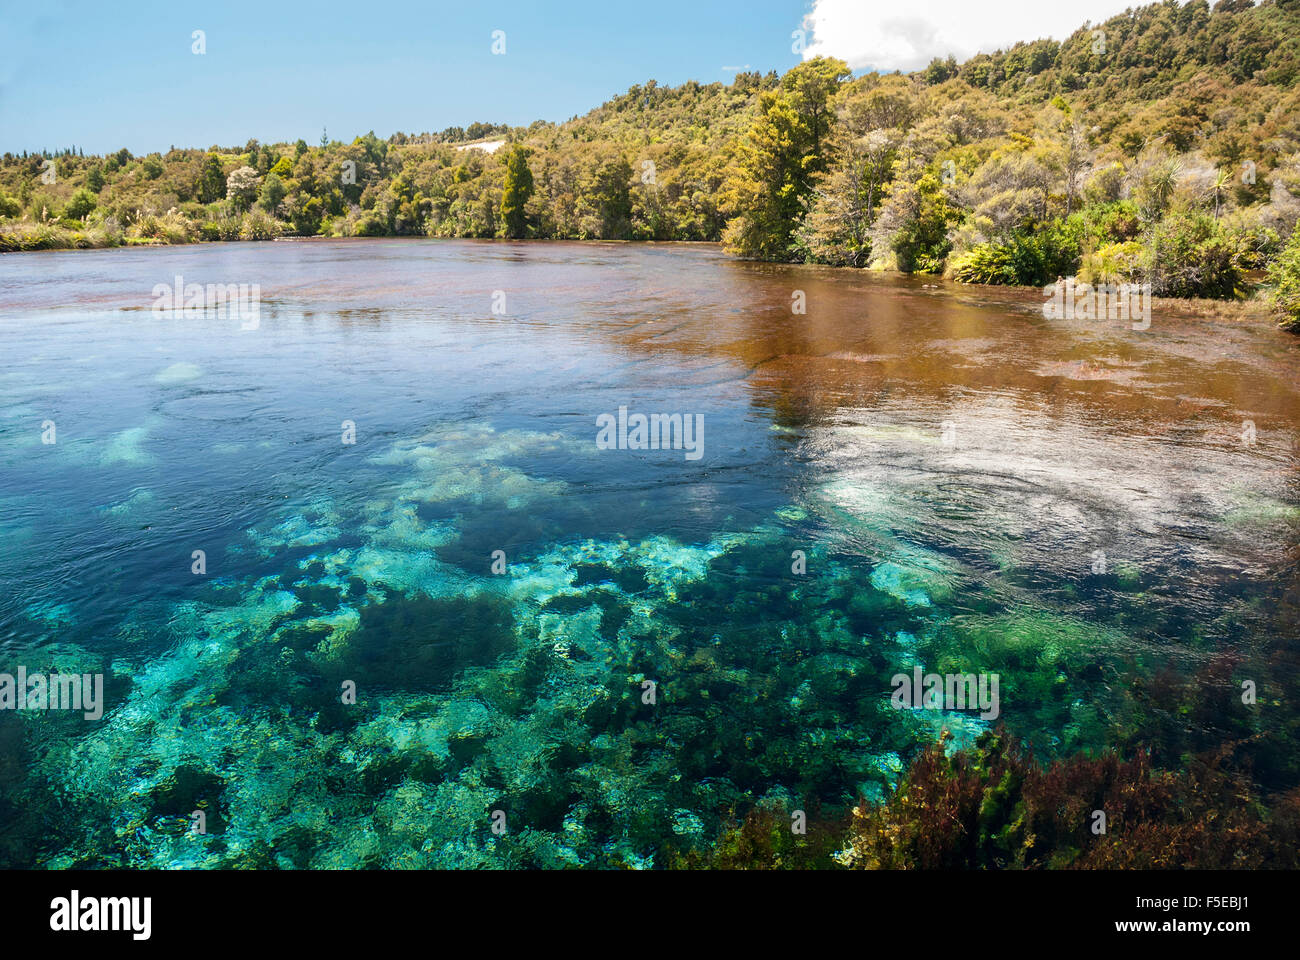 Te Waikoropupu Springs, Takaka karst, South Island, New Zealand, Pacific - Stock Image